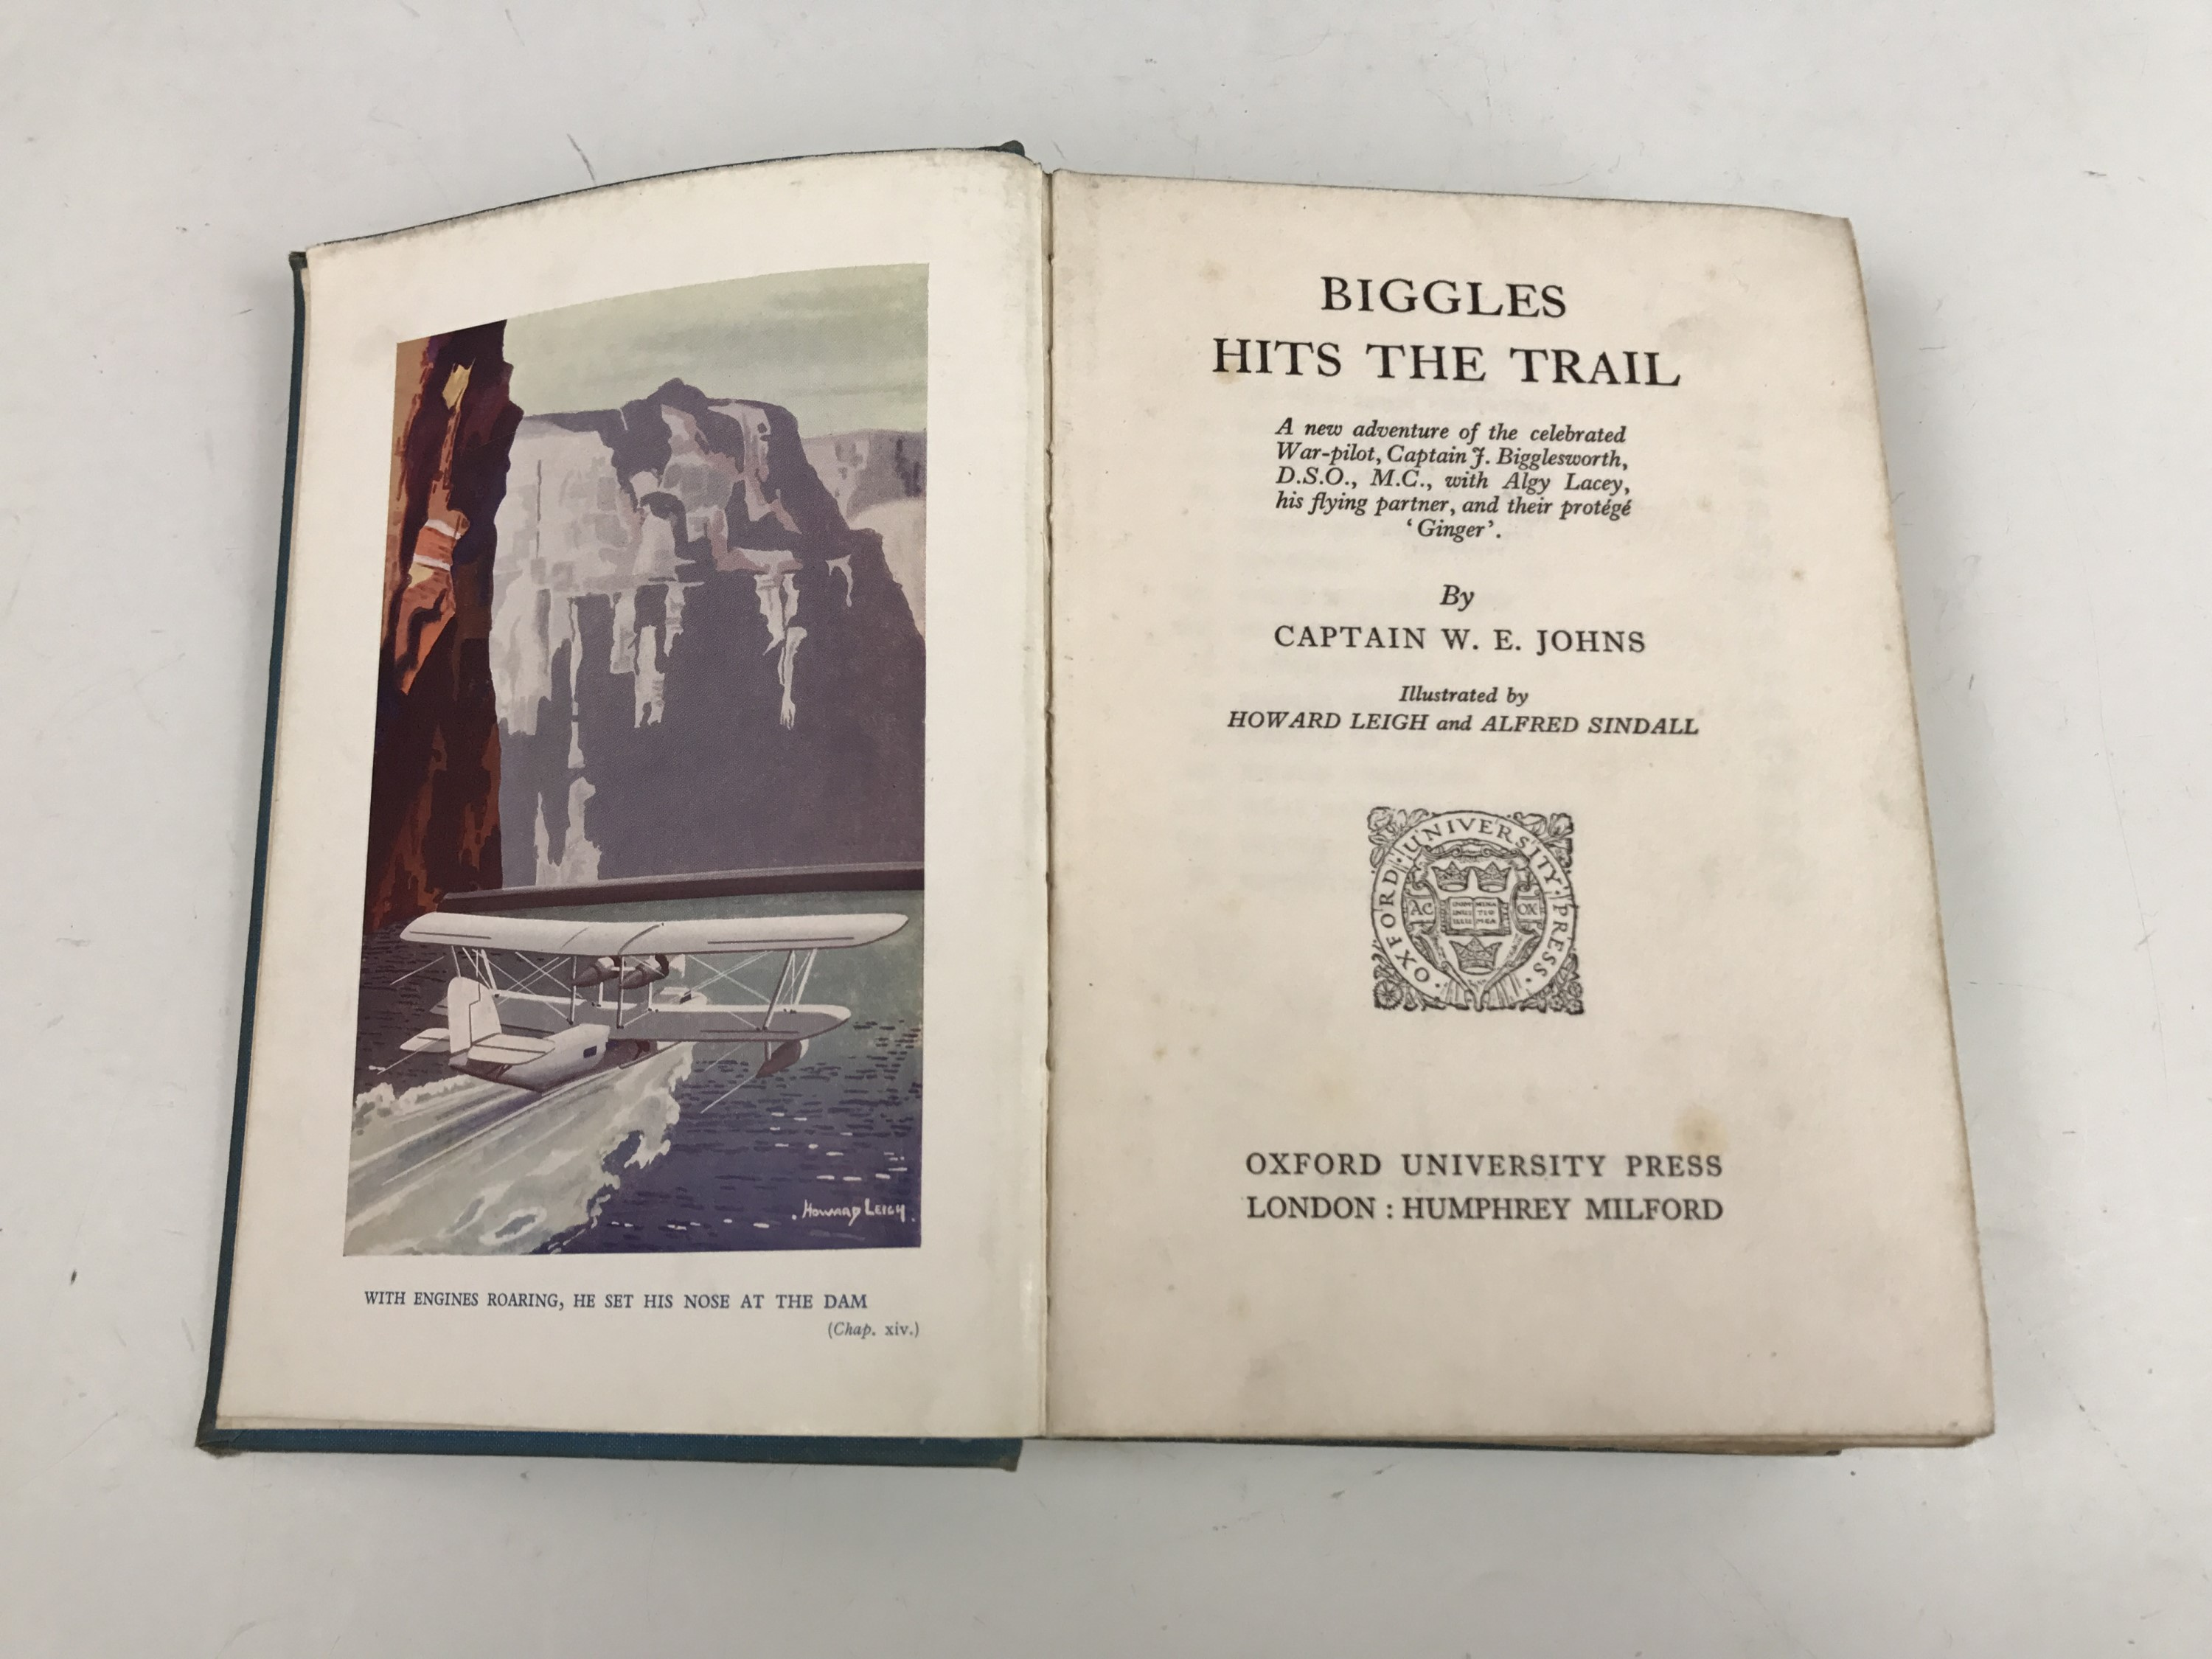 Lot 38 - Johns (Captain W.E.) Biggles Hits the Trail, 1935 and Biggles Goes to War, 1938, 8vo, Oxford